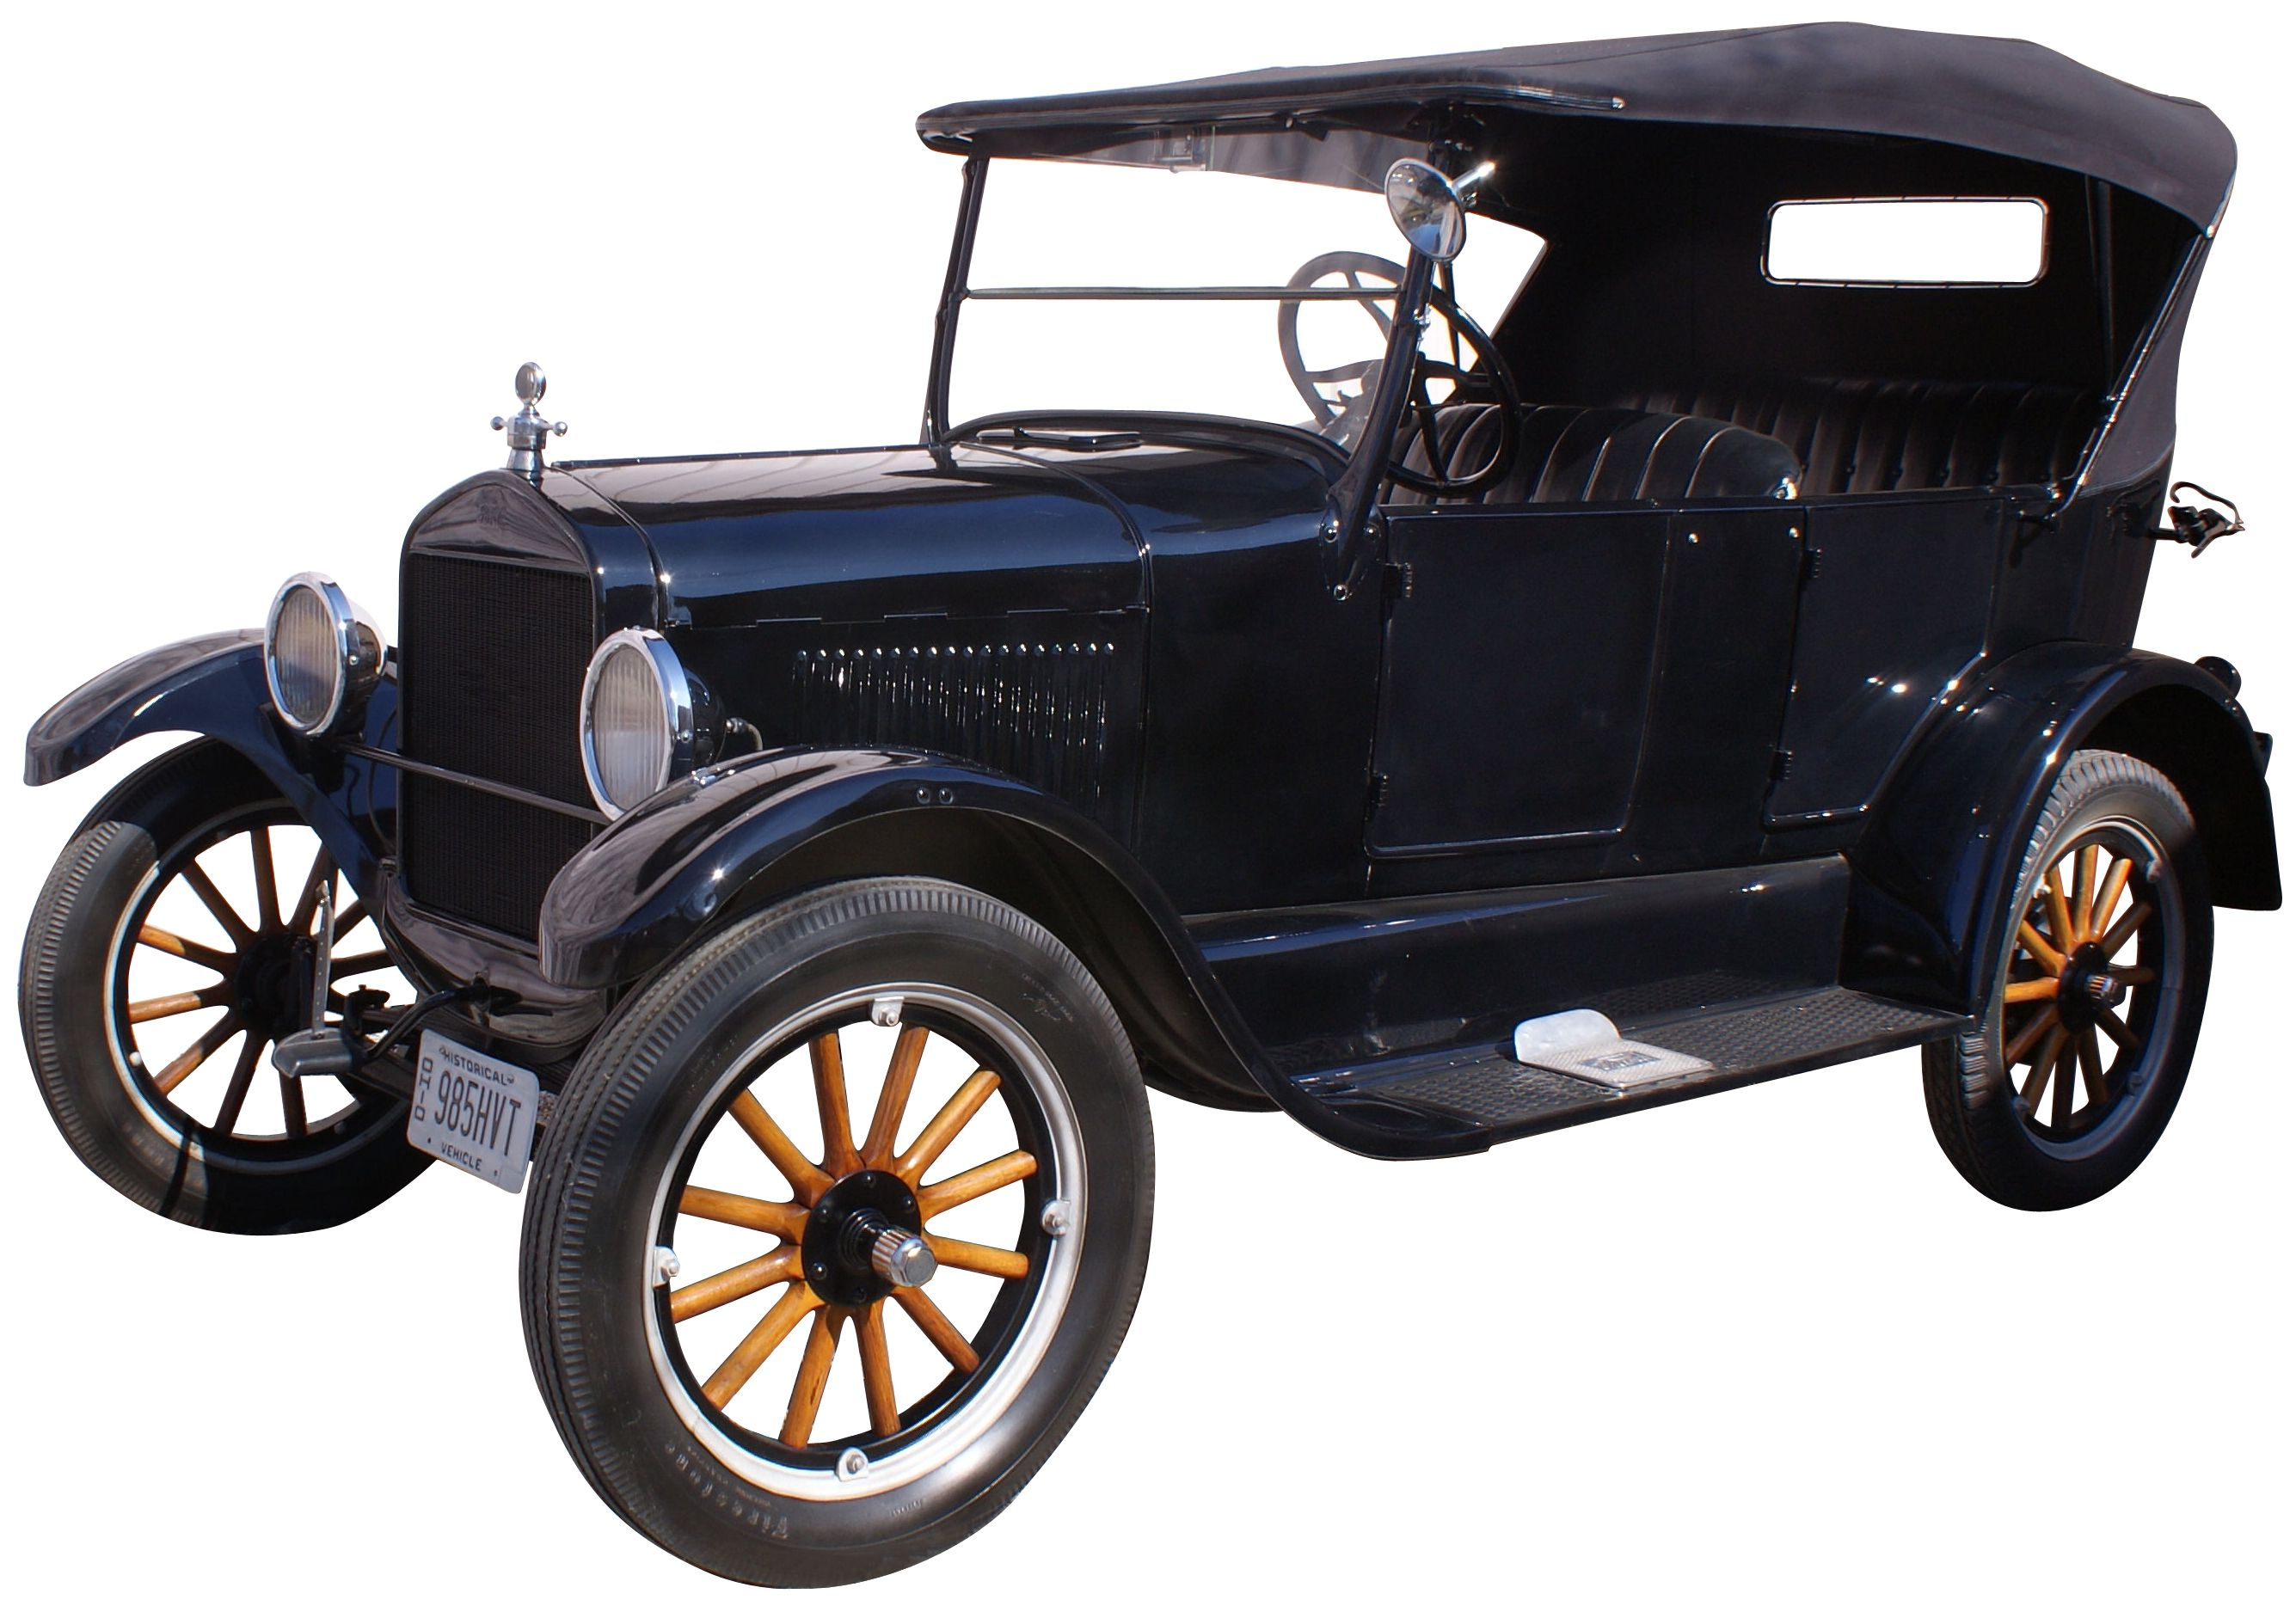 1926 Model T | Ford models, Ford and Cars